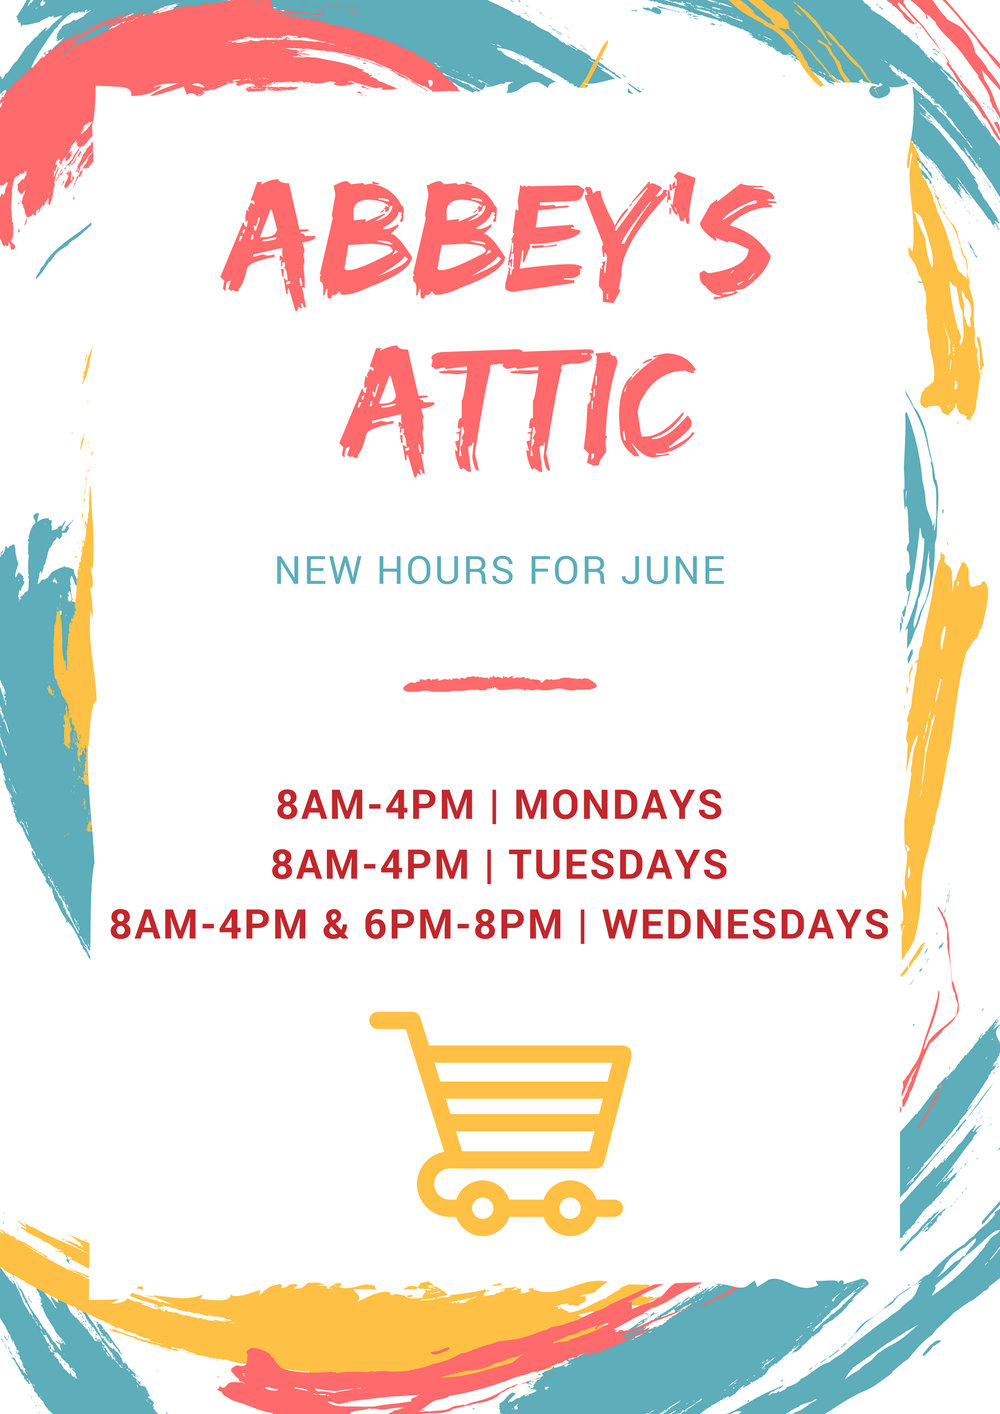 Abbey's Attic June Hours.jpg